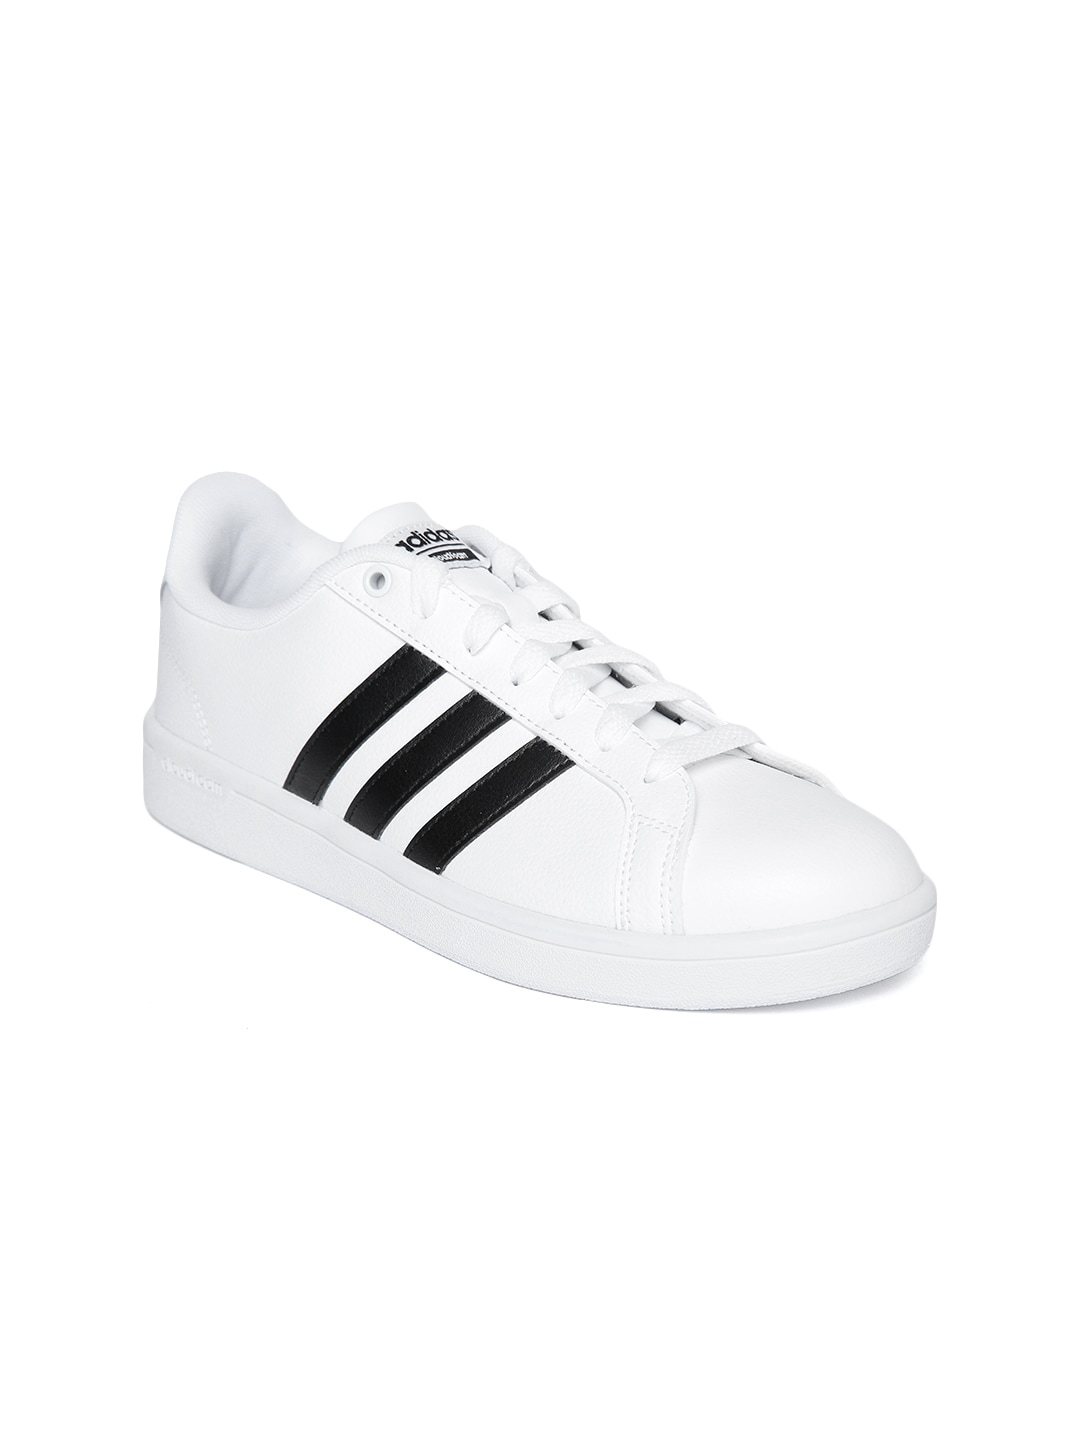 adidas shoes white women